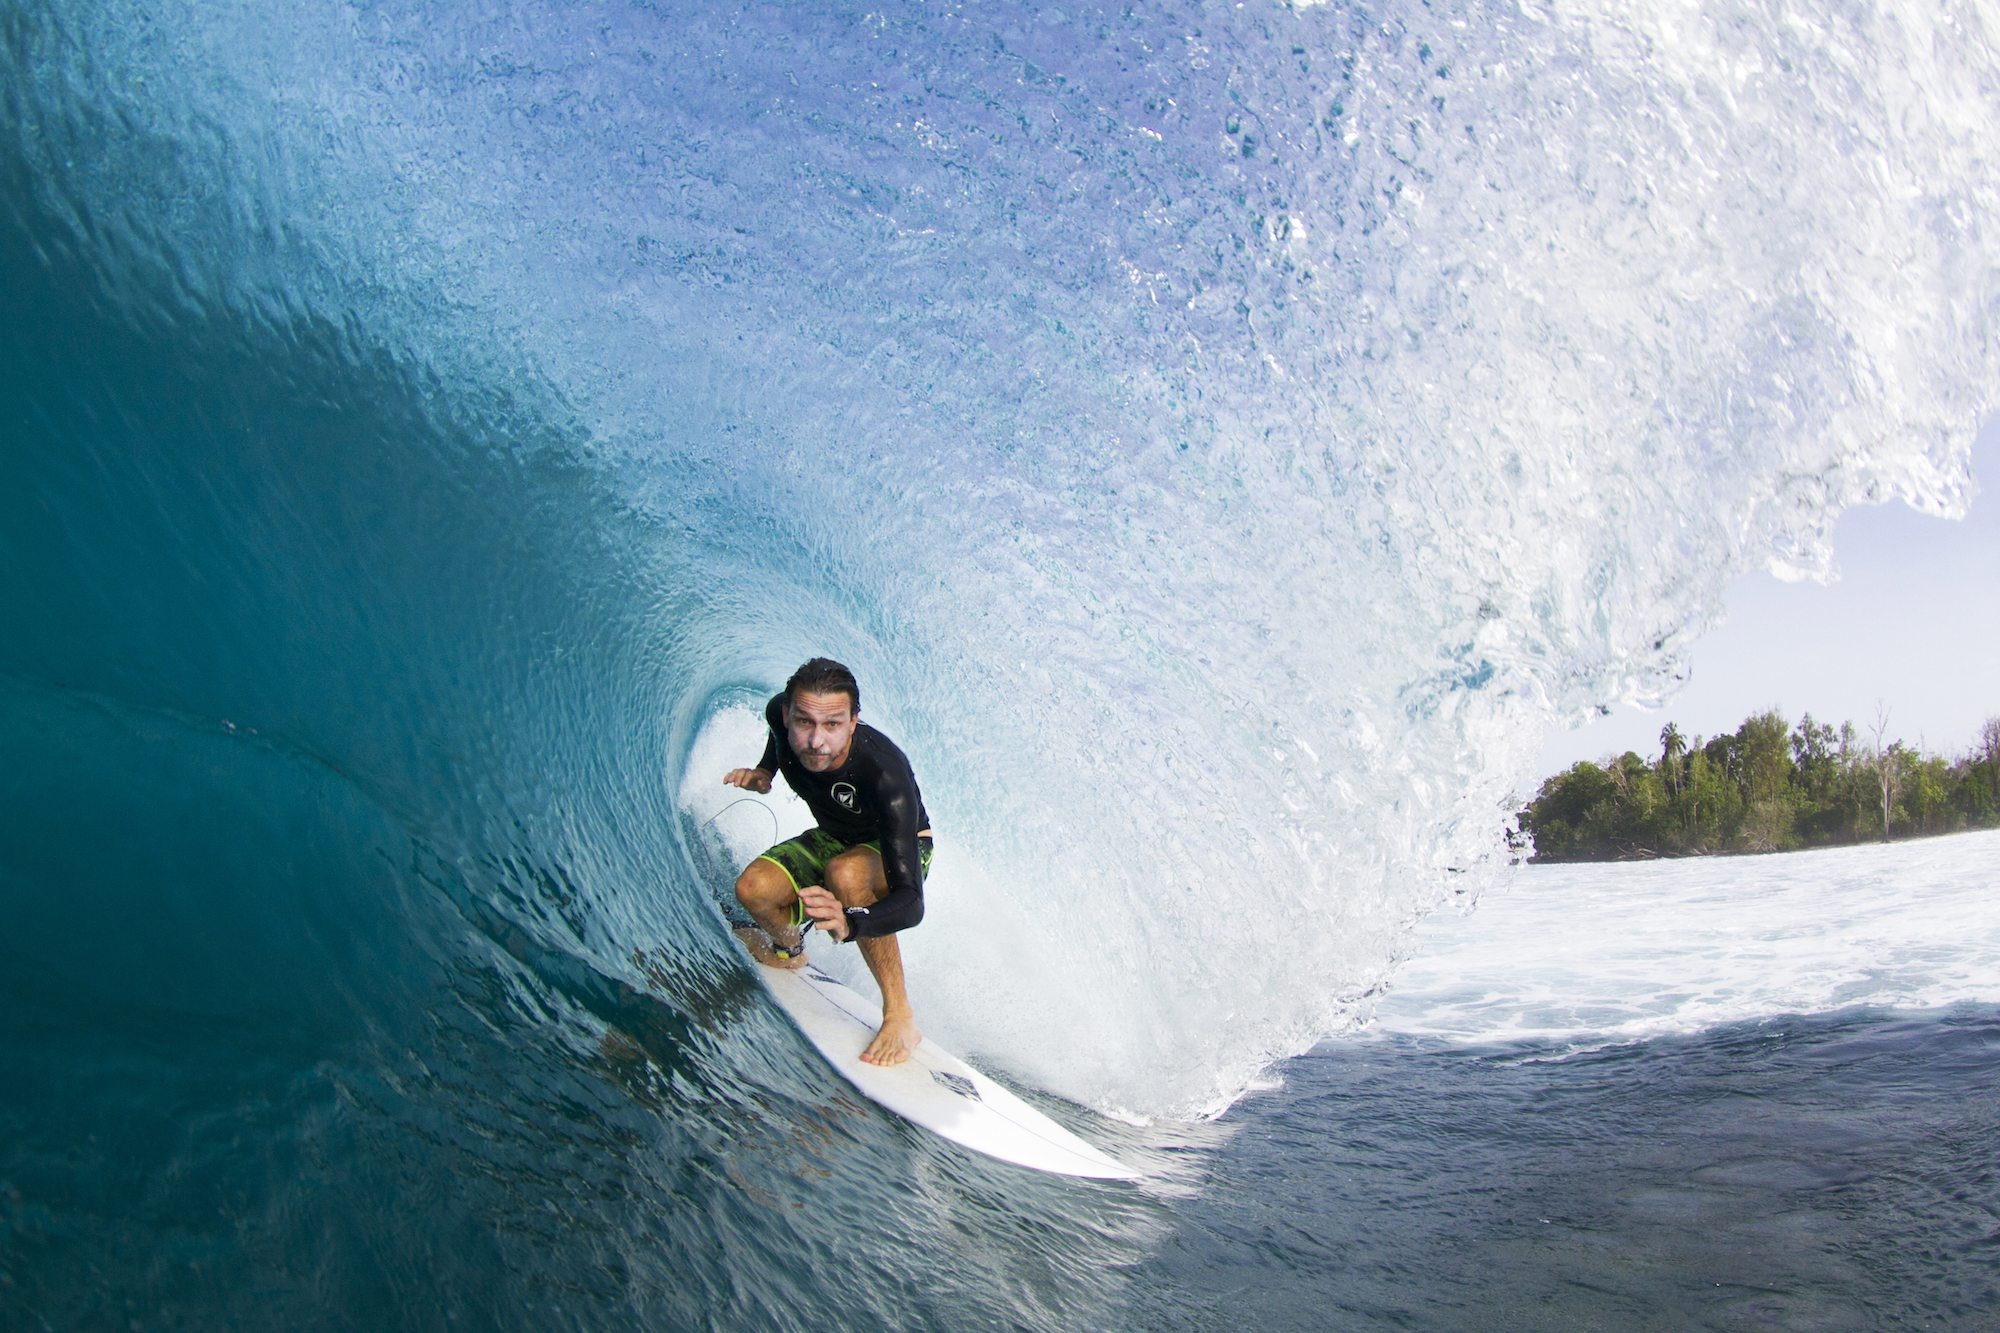 surfer is inside the barrel roll wave, surf banyak